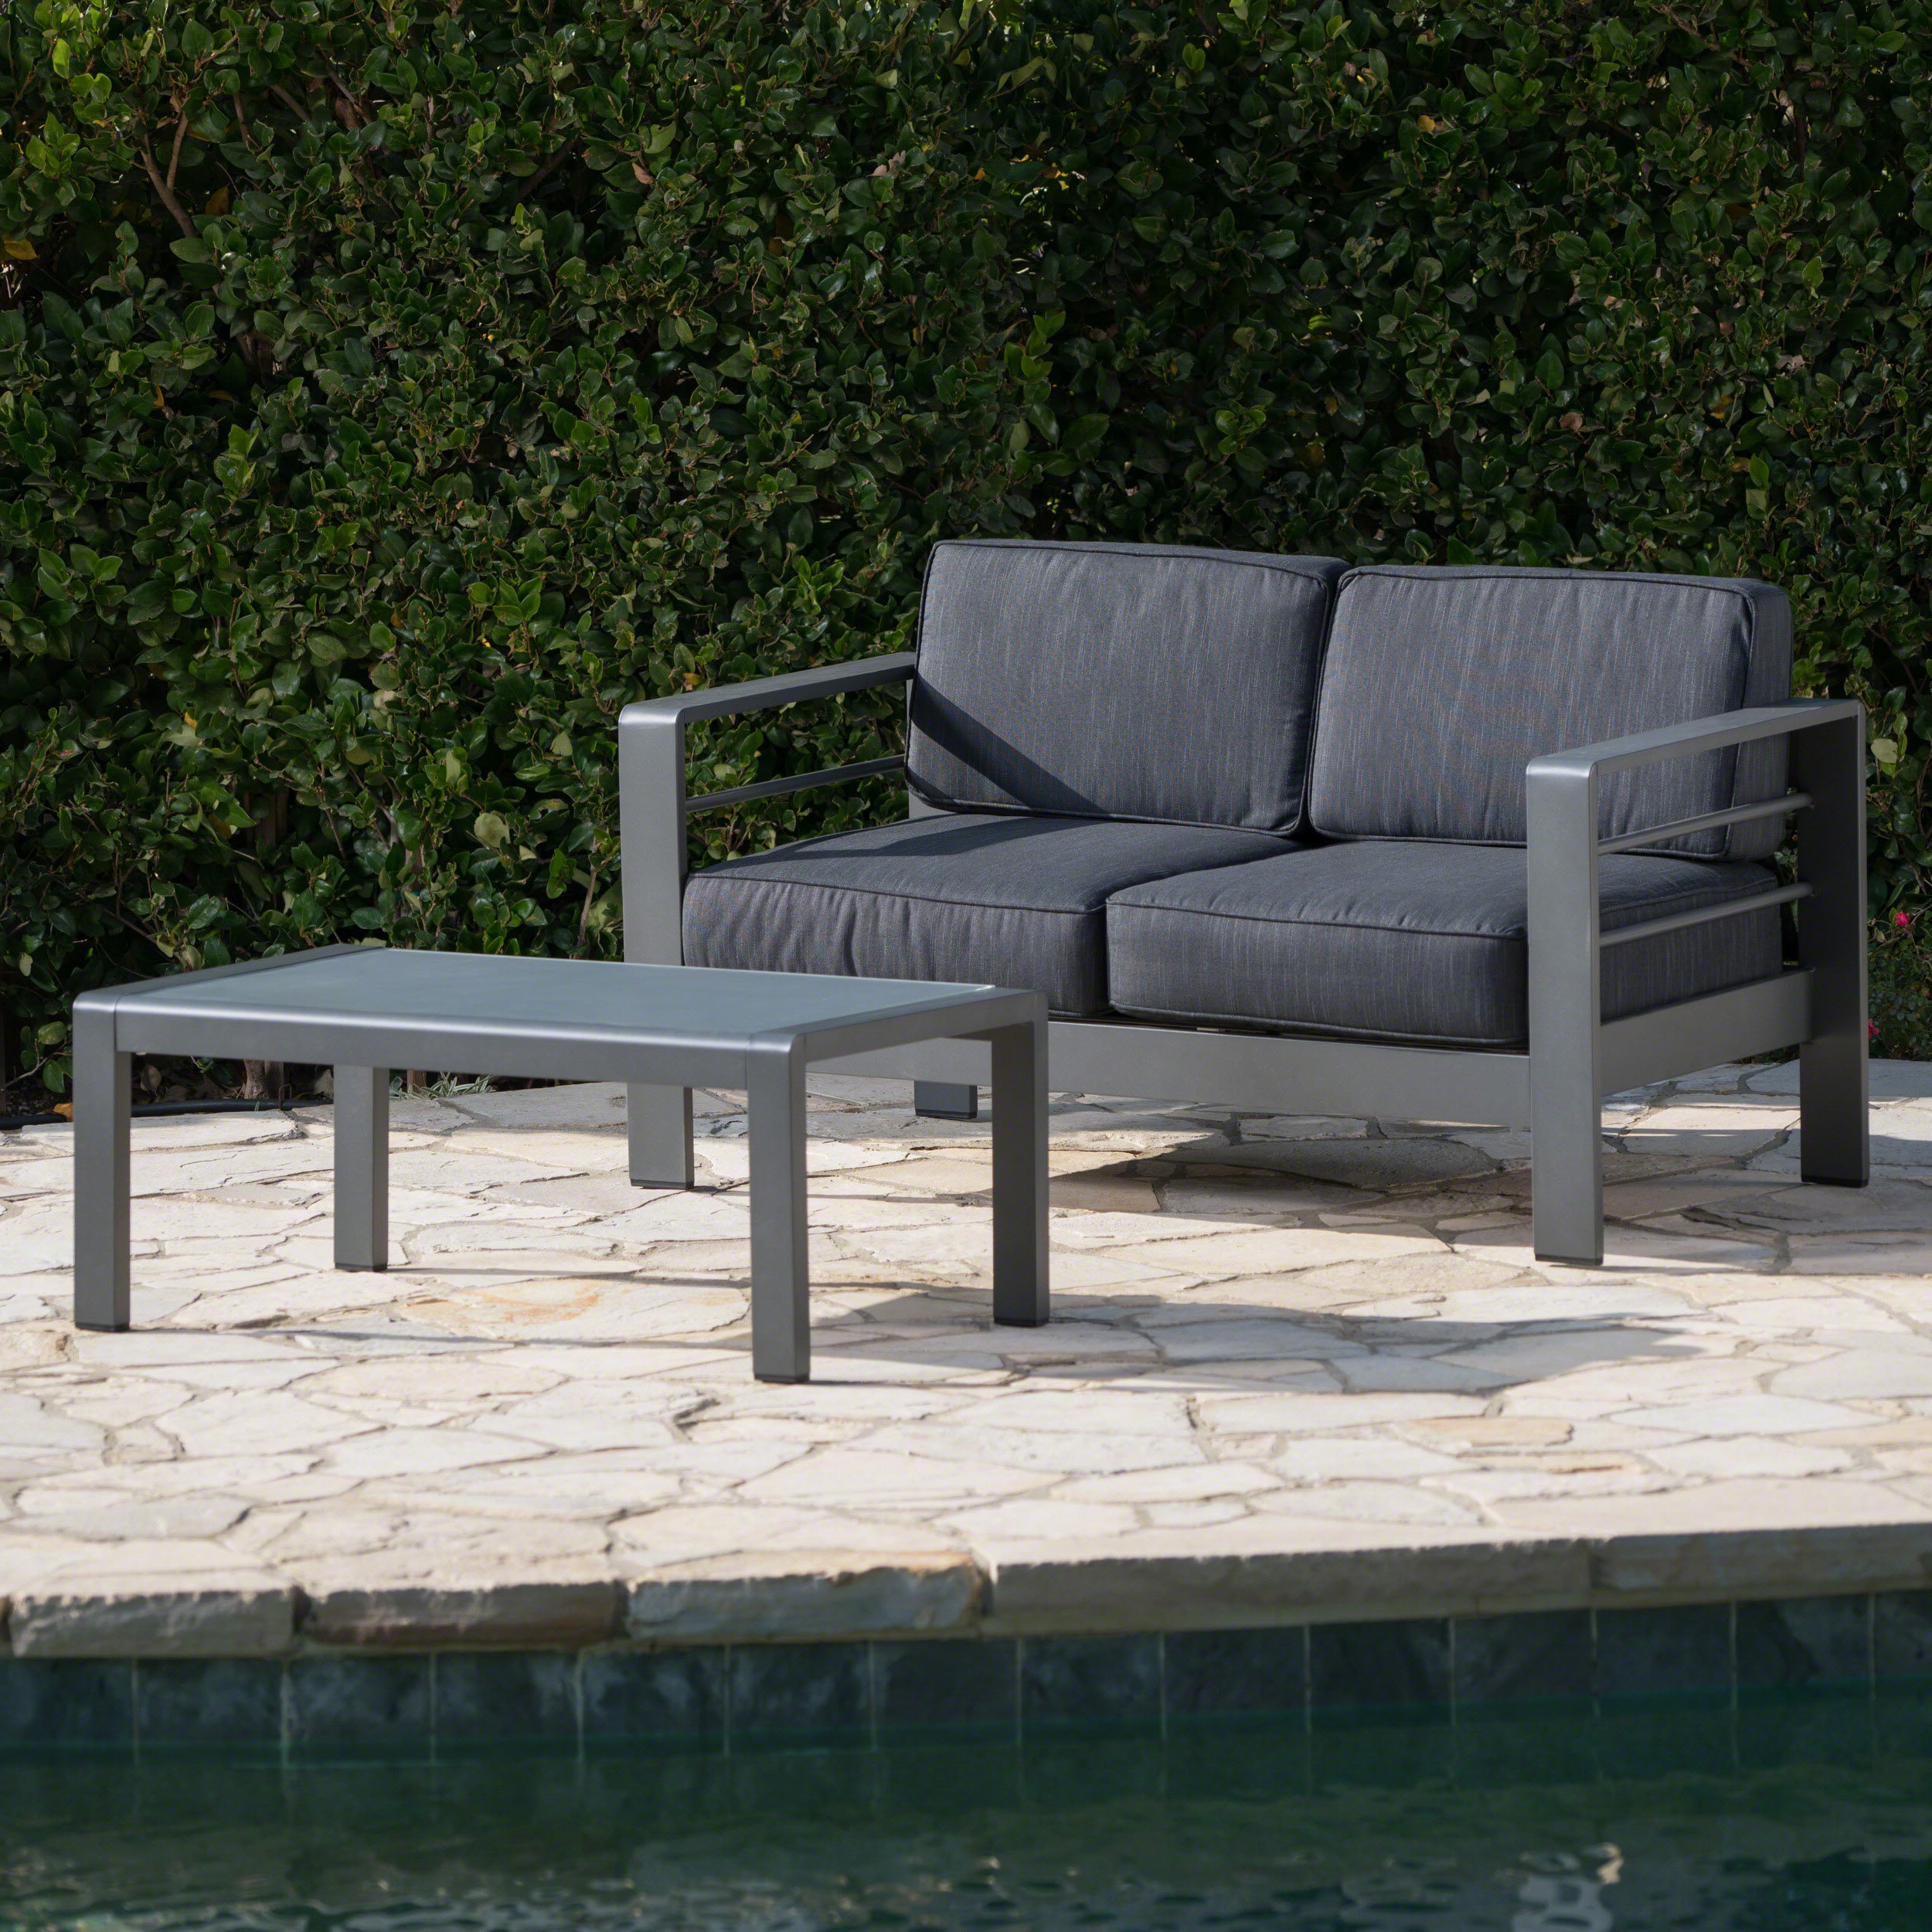 Famous Royalston Patio Sofas With Cushions For Royalston 2 Piece Sofa Set With Cushions (View 8 of 20)